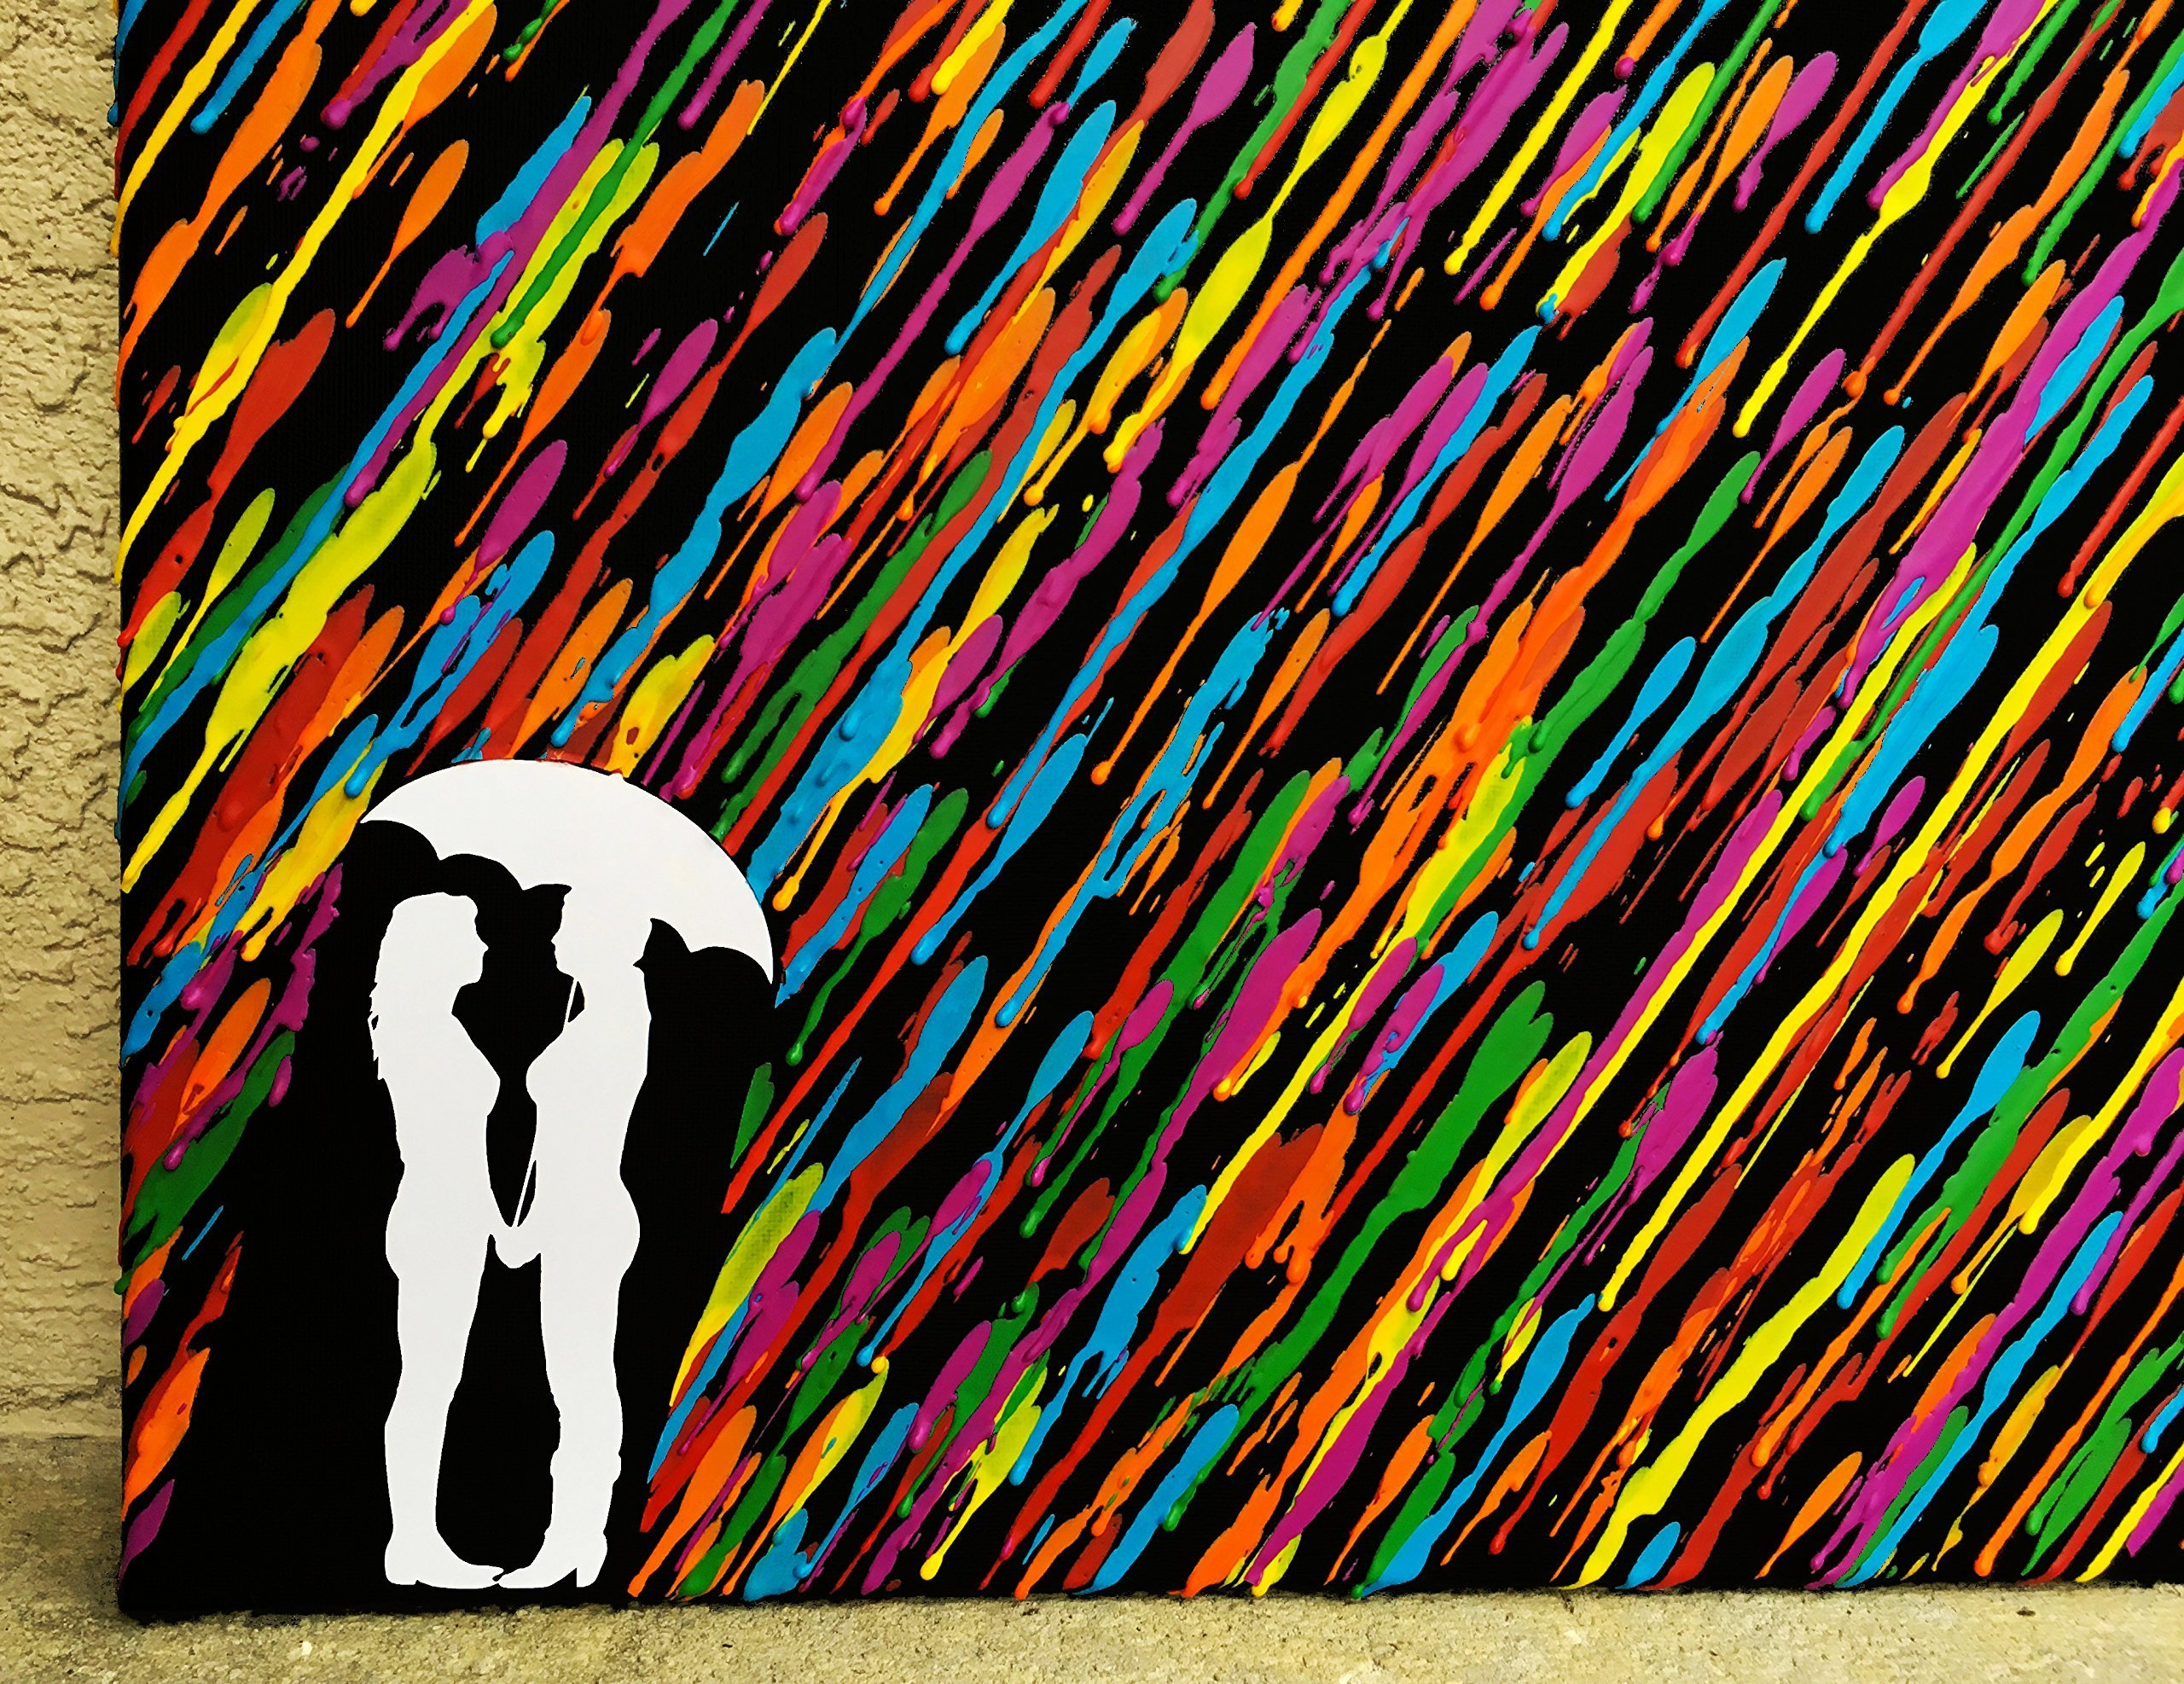 Lesbian Girlfriend Gift, Girl Couple Gift, Melted Crayon Art, Lesbian Wedding Gift 16''x20'' Canvas Art